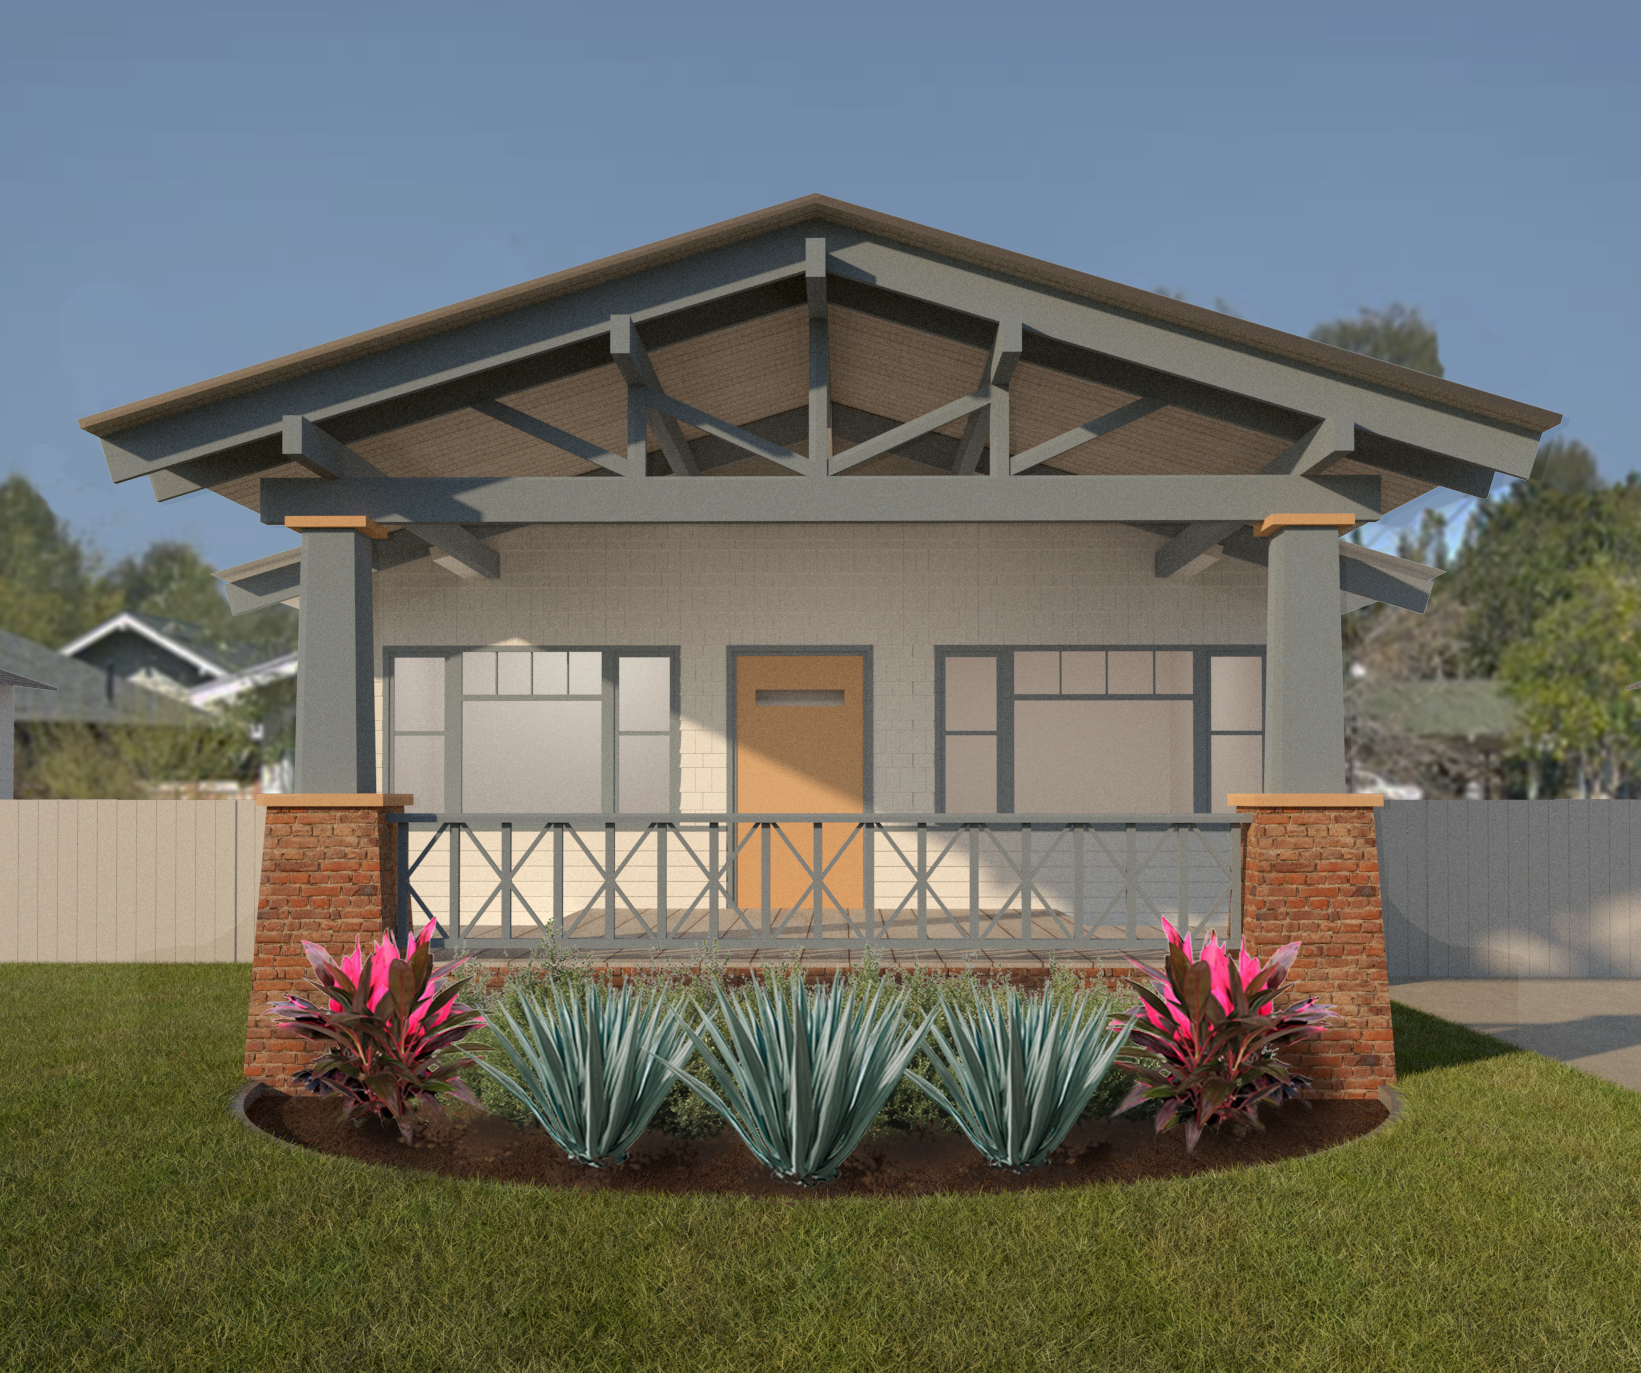 Design for a remodel of a historical craftsman house in Long Beach, CA - currently being designed and permitted by BNDL LLC.